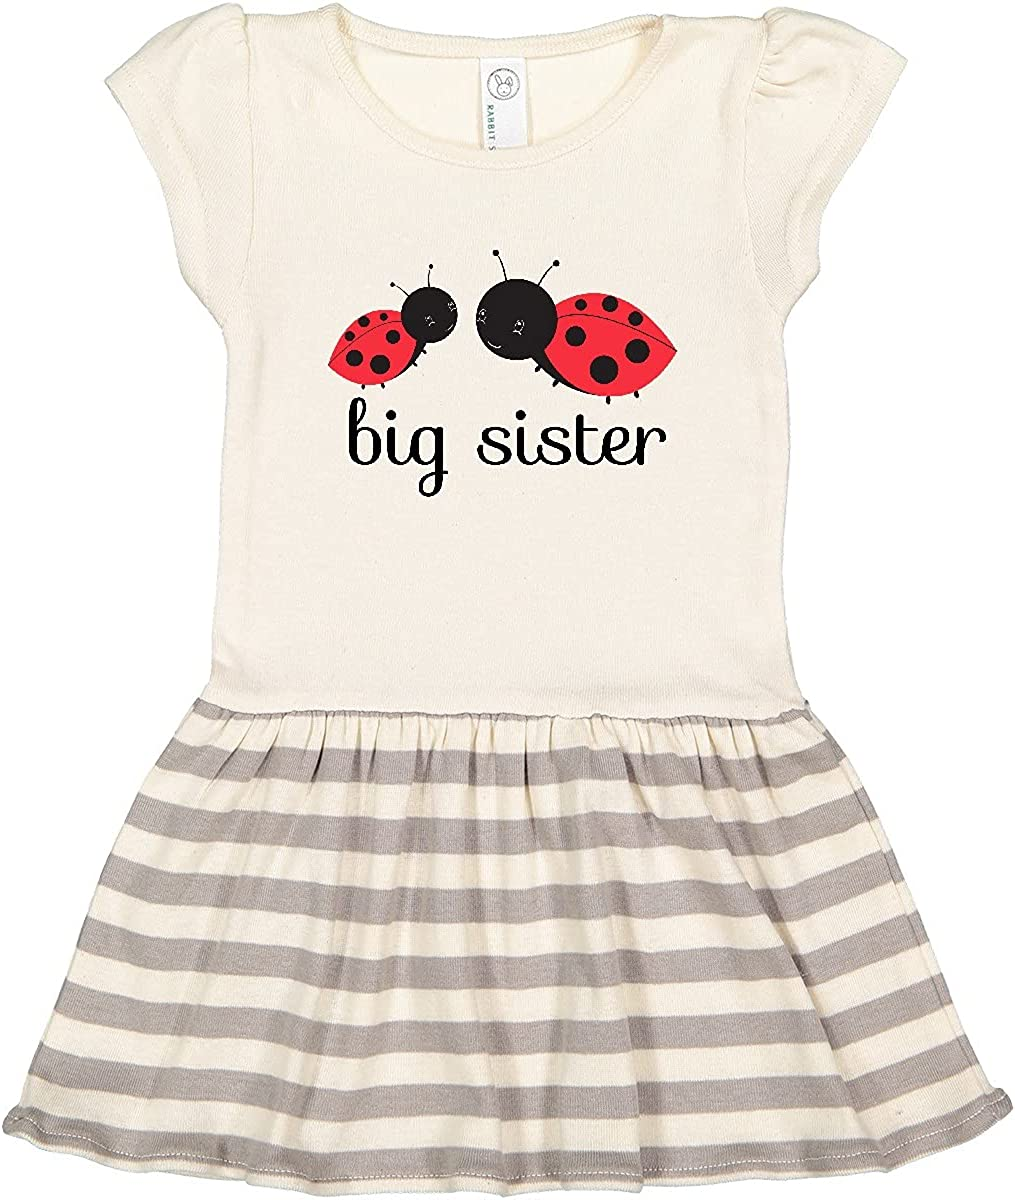 inktastic Challenge the lowest price of Japan ☆ Big Sister Free Shipping Cheap Bargain Gift Toddler Dress